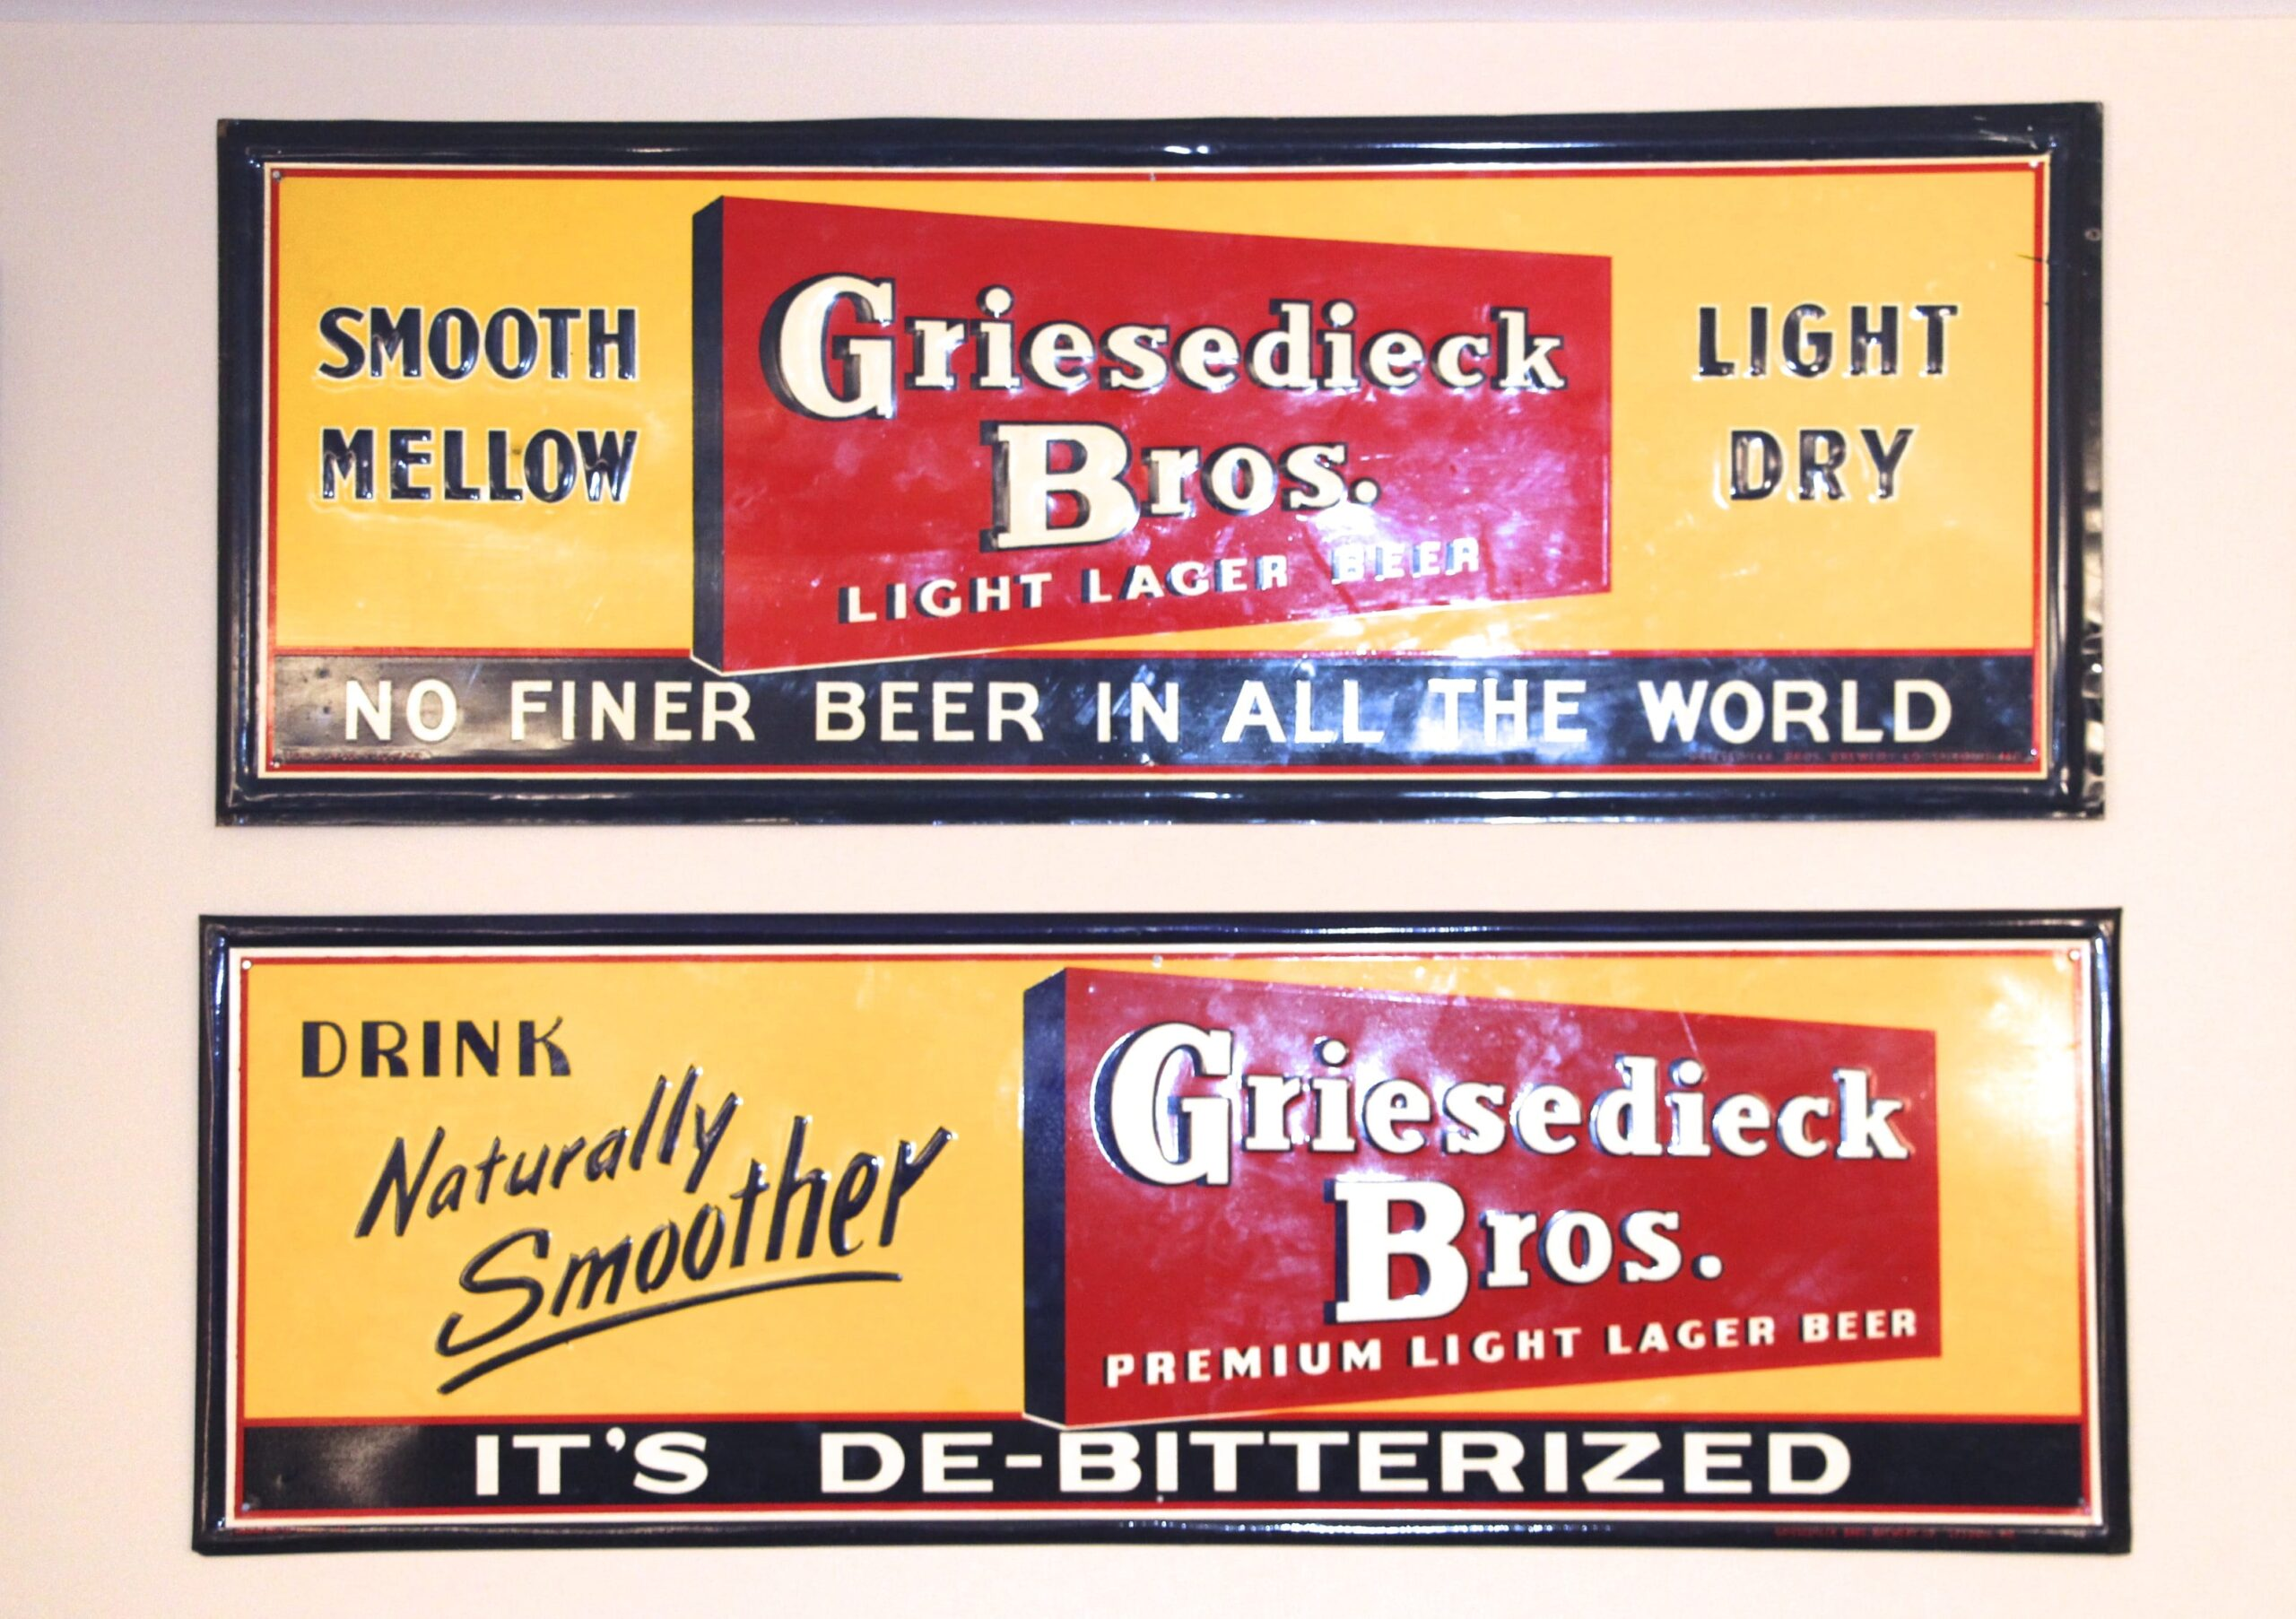 Griesedieck Bros. Tin Signs, St. Louis, MO